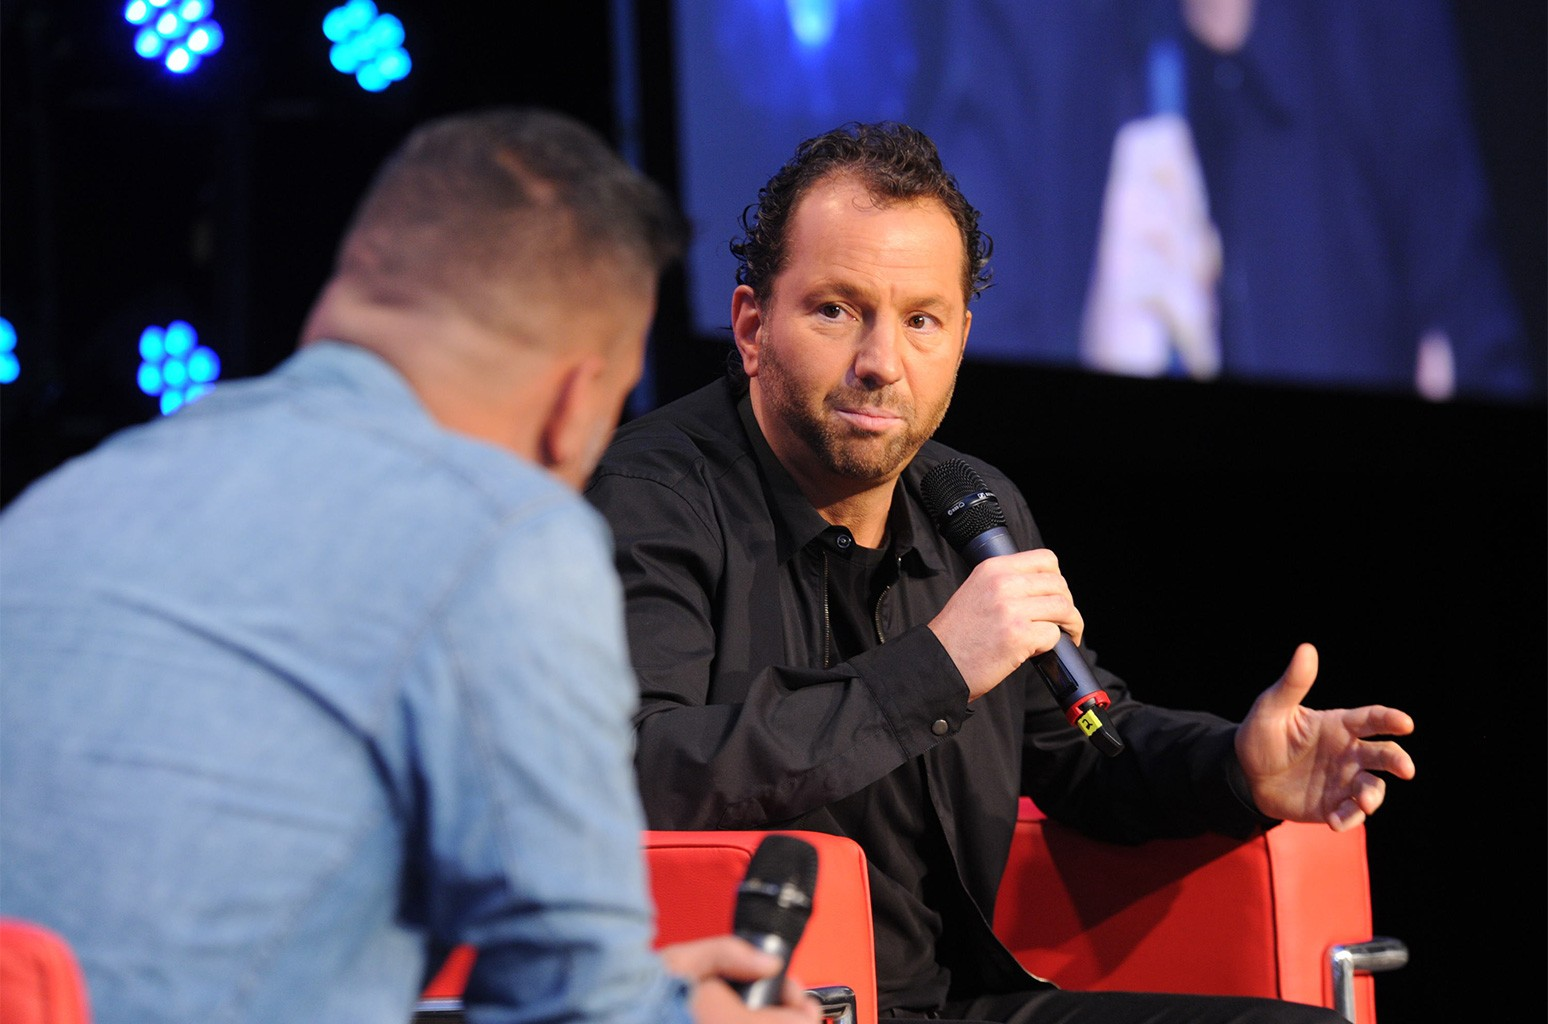 Live Nation CEO Michael Rapino appears at Canadian Music Week